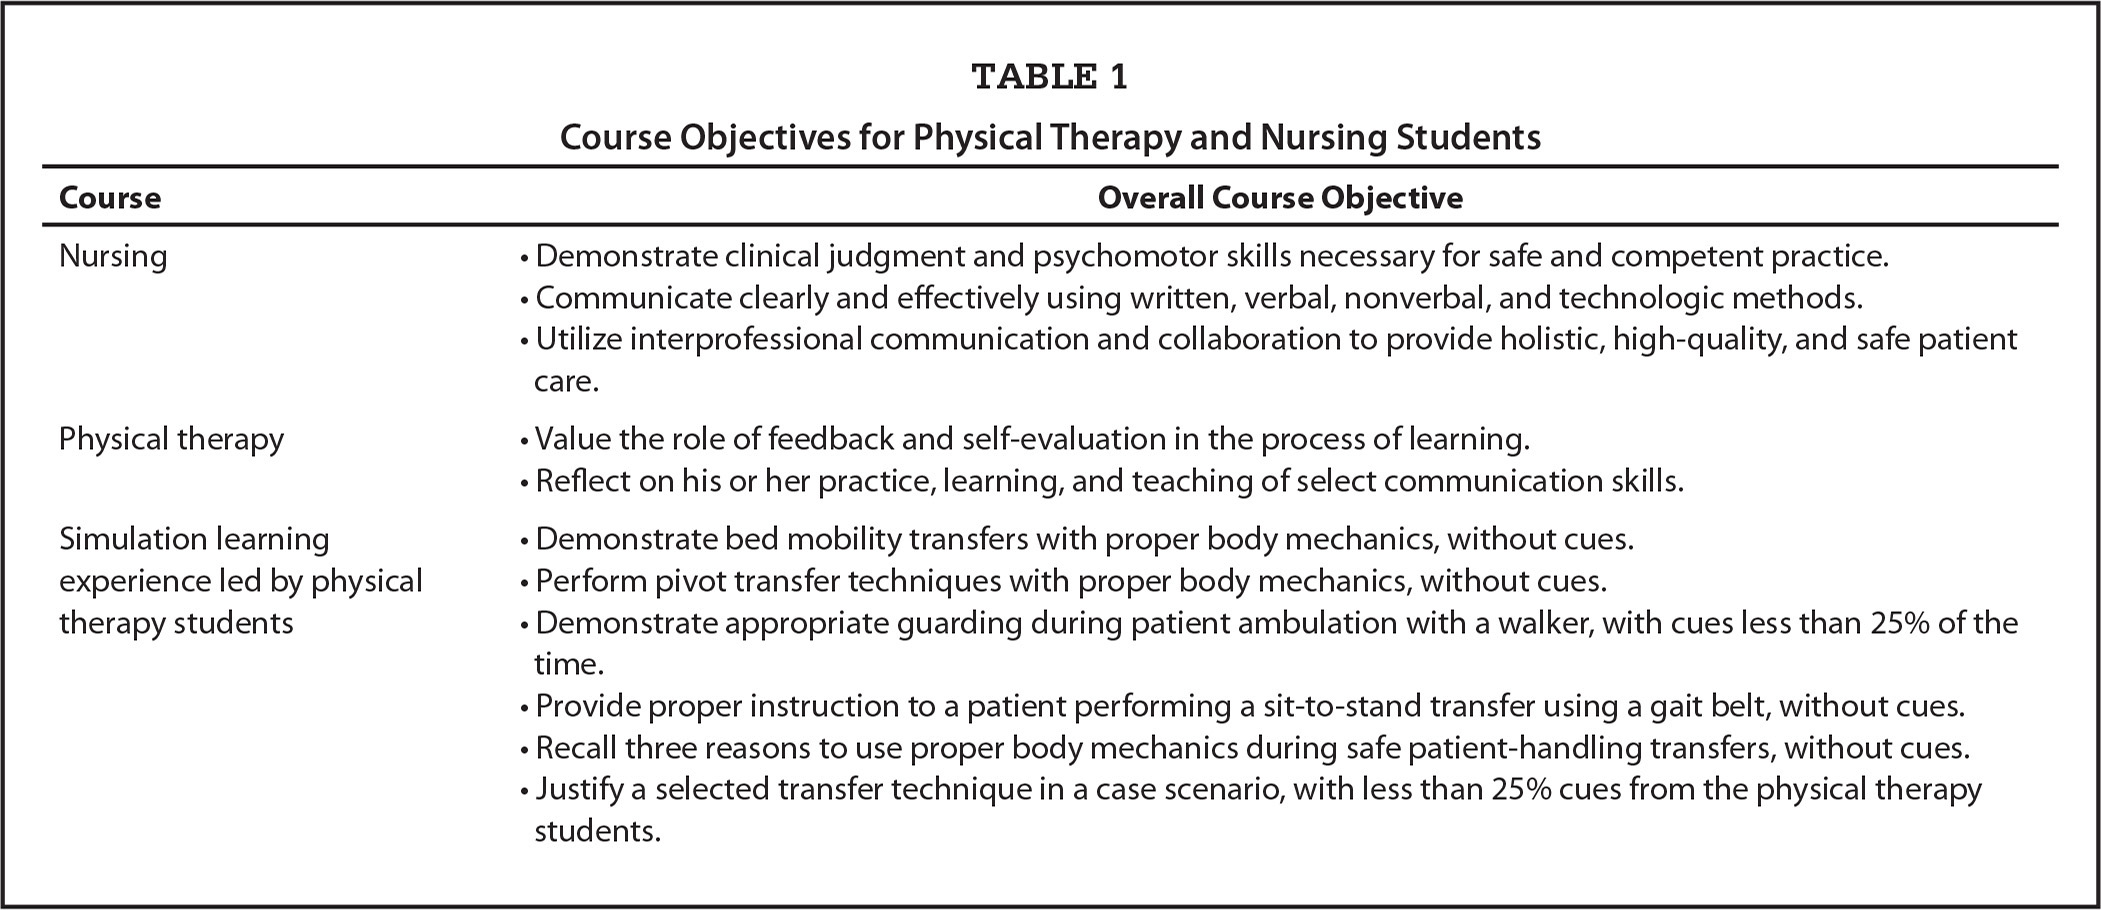 thesis statement for physical therapy Physical therapy research papers discuss an area of the medical field that can help the recovery of patients with motive difficulty, with or without the aid of other forms of medical treatment physical therapy is an important aspect of the medical field as it can help the recovery of patients with motive difficulty, with or without the aid of.